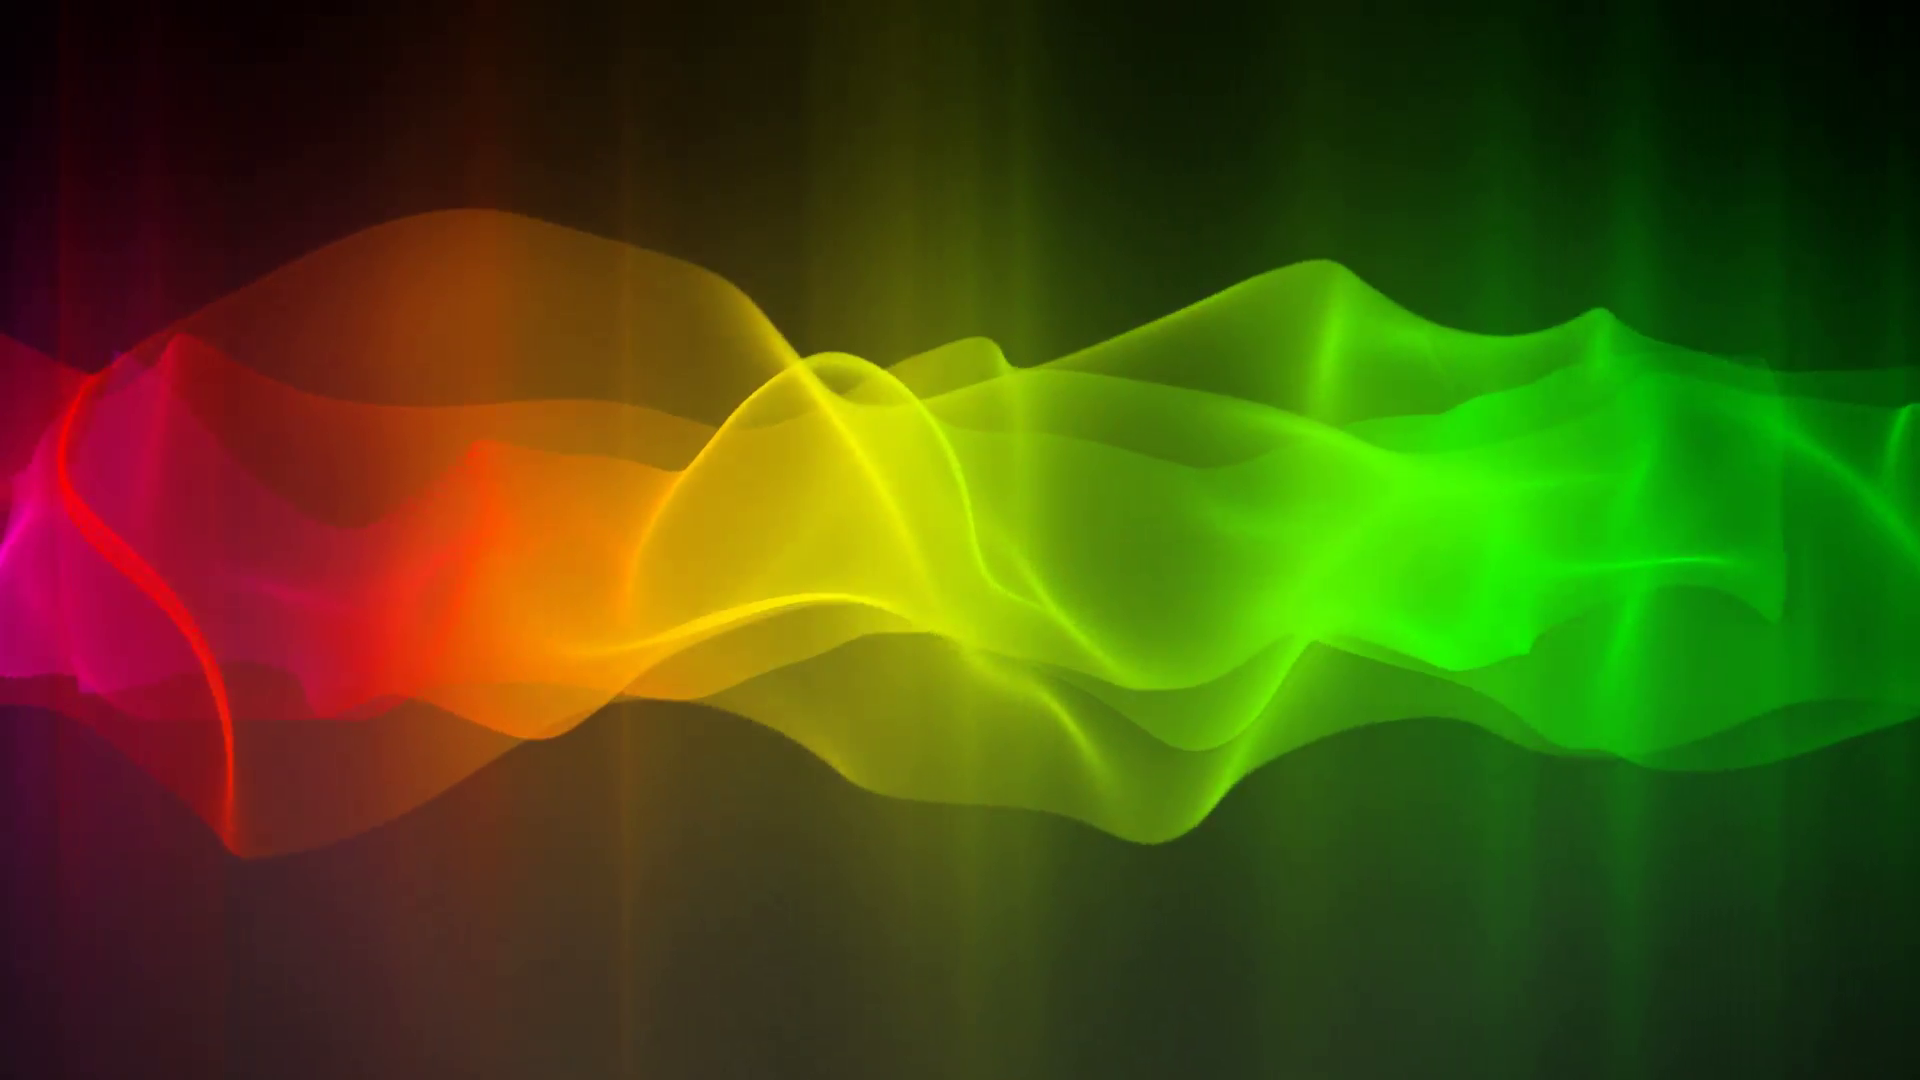 Download 10,000 Abstract Motion Backgrounds | VideoBlocks